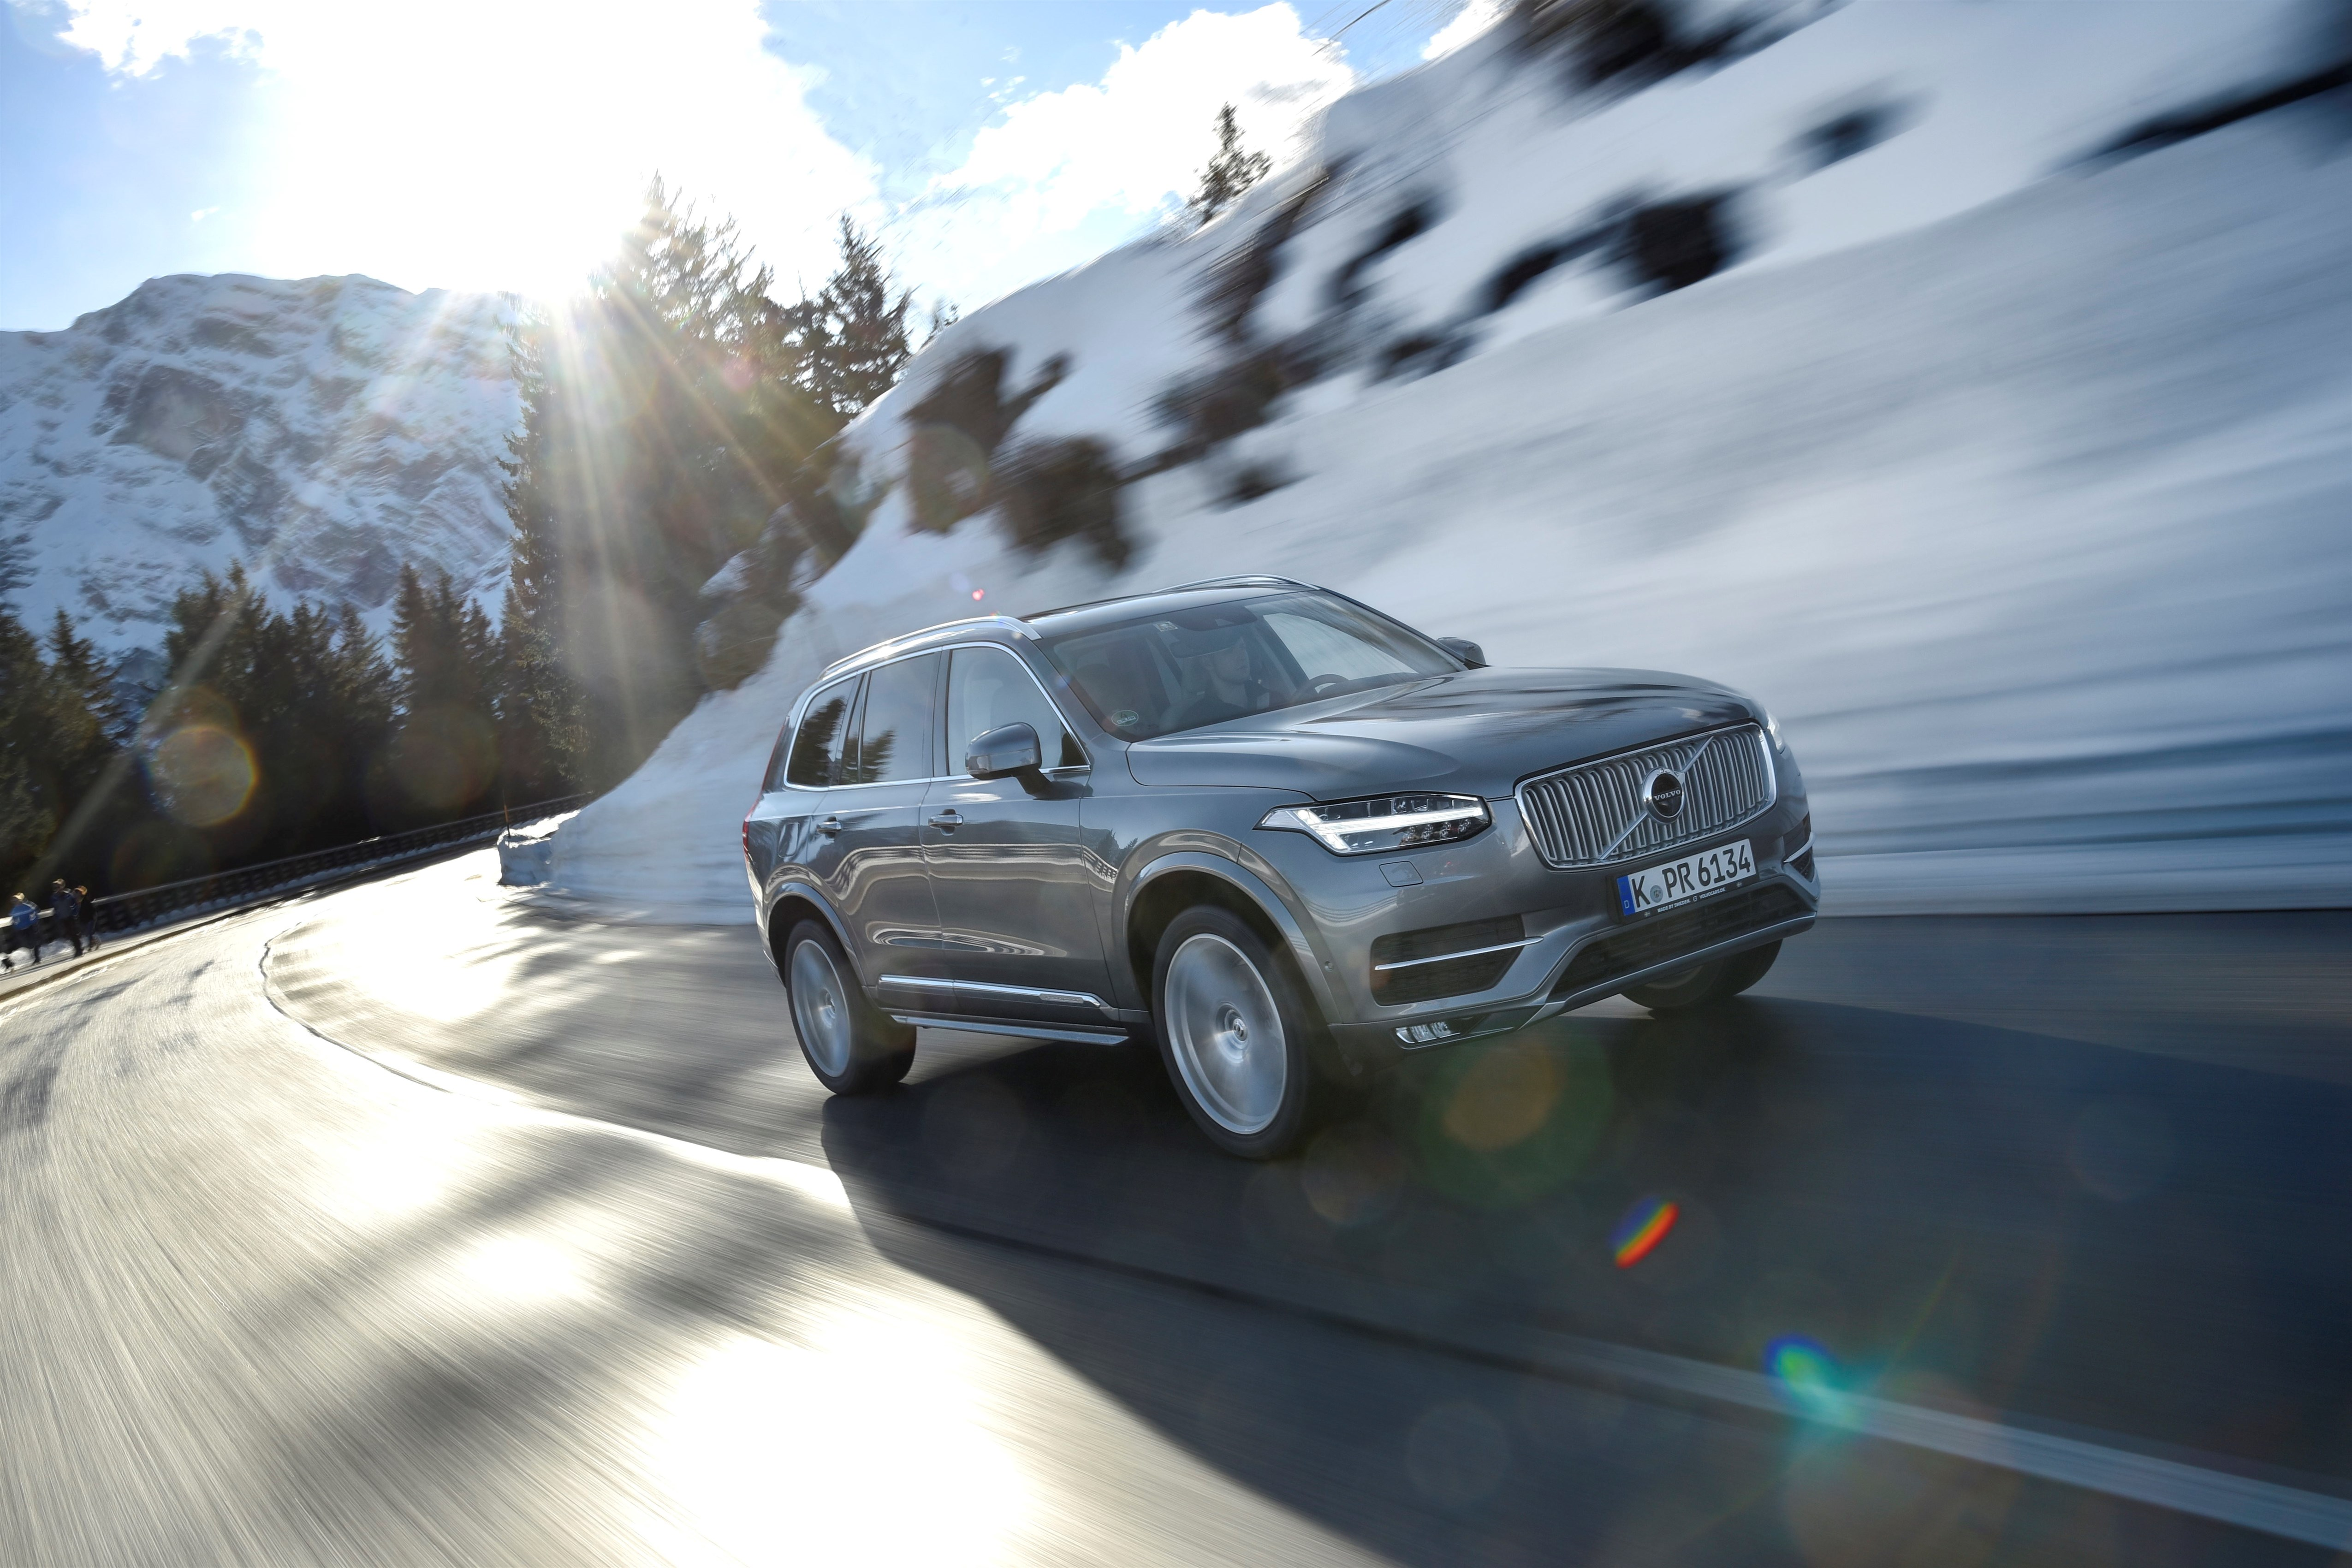 used volvo xc90 for sale near tempe az | courtesy volvo cars of